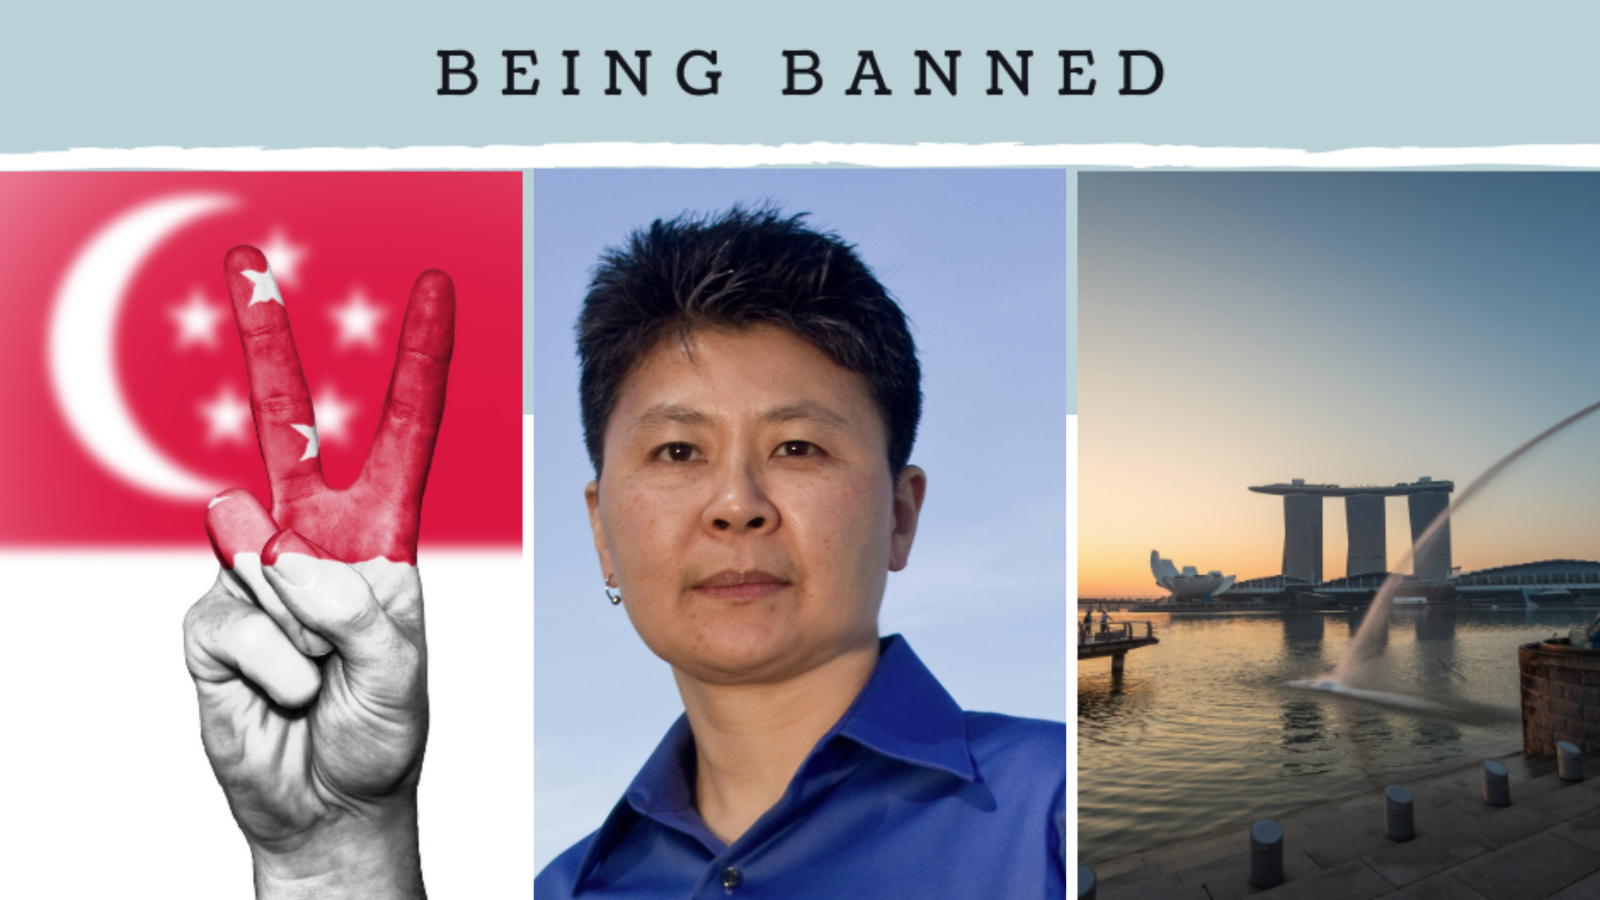 At the top, black text on a pale blue-gray background reads Being Banned. On the left is a photo of the Singapore flag and a hand holding up their index and middle fingers in a peace sign. In the center is a portrait photo of Madeleine Lim, an Asian woman with medium-brown skin and short black hair, wearing a blue collared shirt. On the right is a photo of Marina Bay in Singapore at sunset.